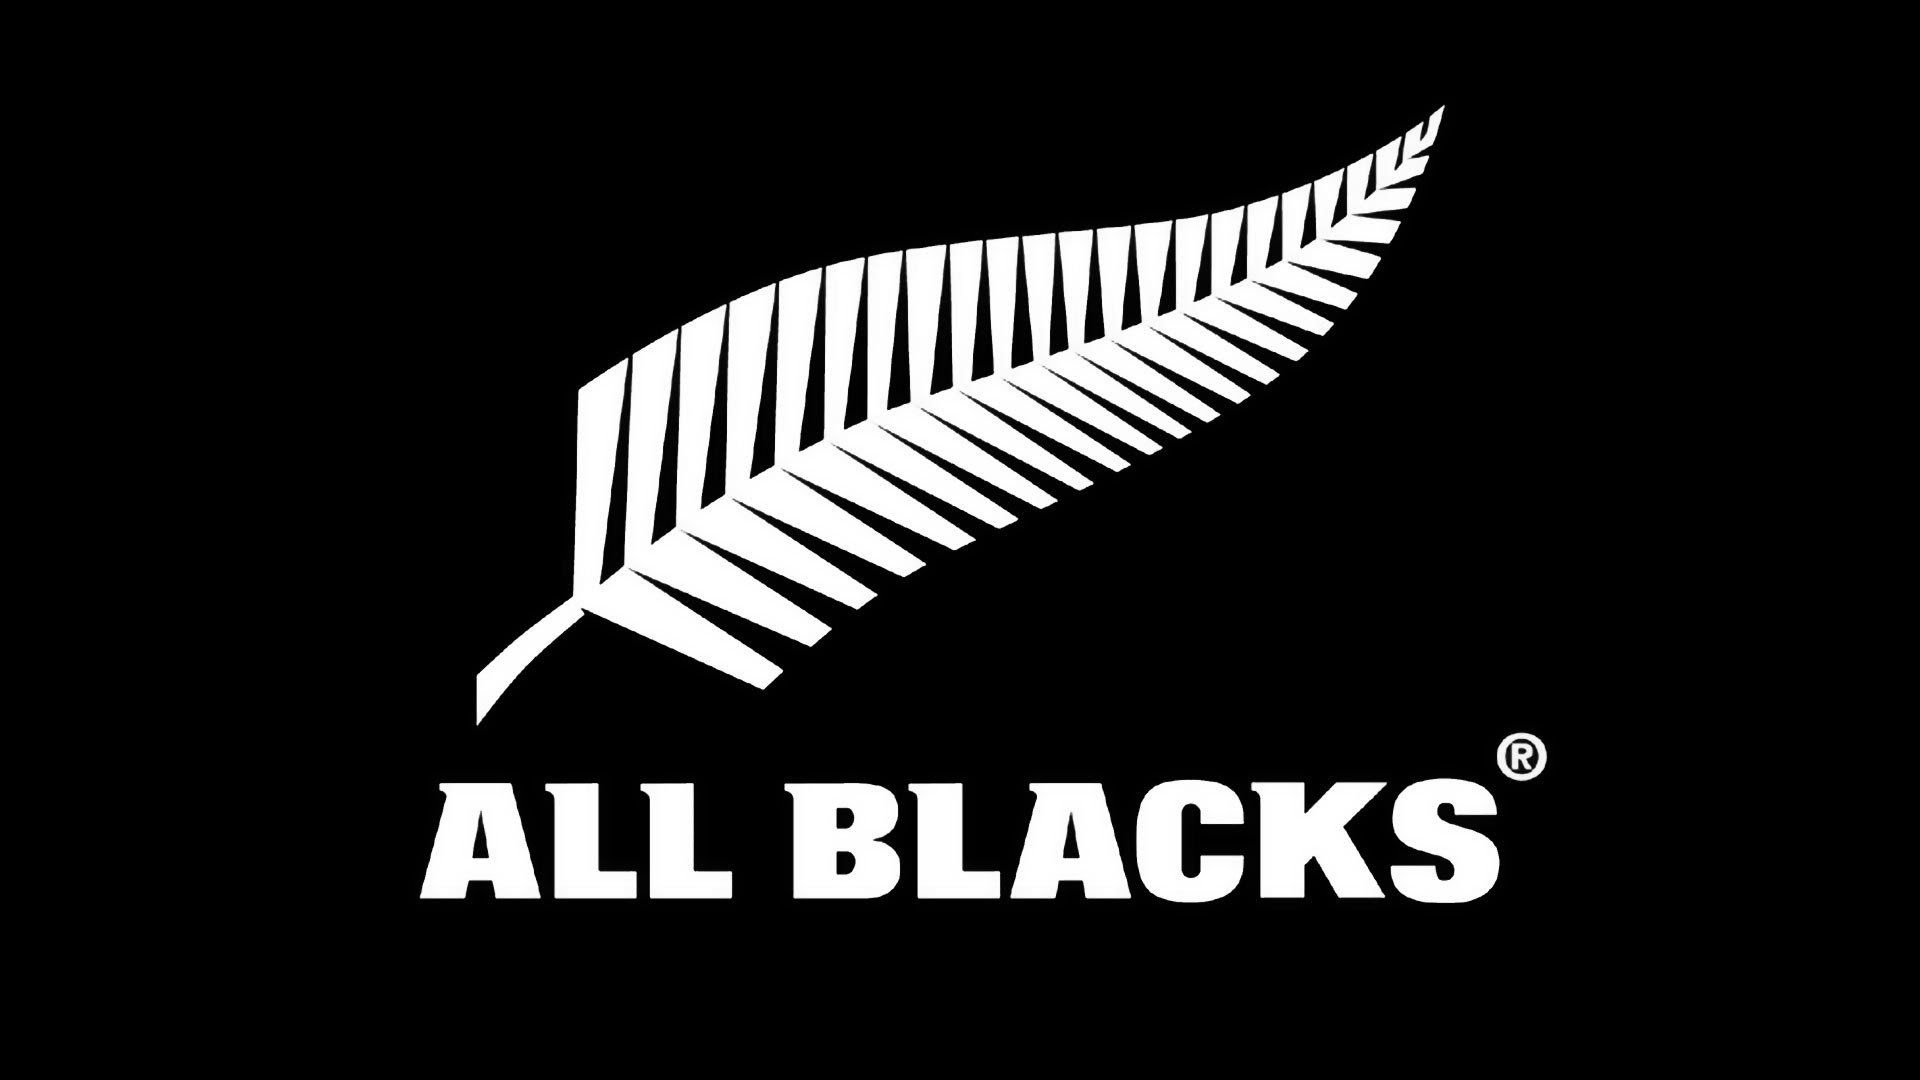 I Am A Professional Graphic Designer Who Produces Logos I Have 3 Years Of Experience I Have Done A Lot Of Work On T All Blacks Rugby All Blacks Nz All Blacks